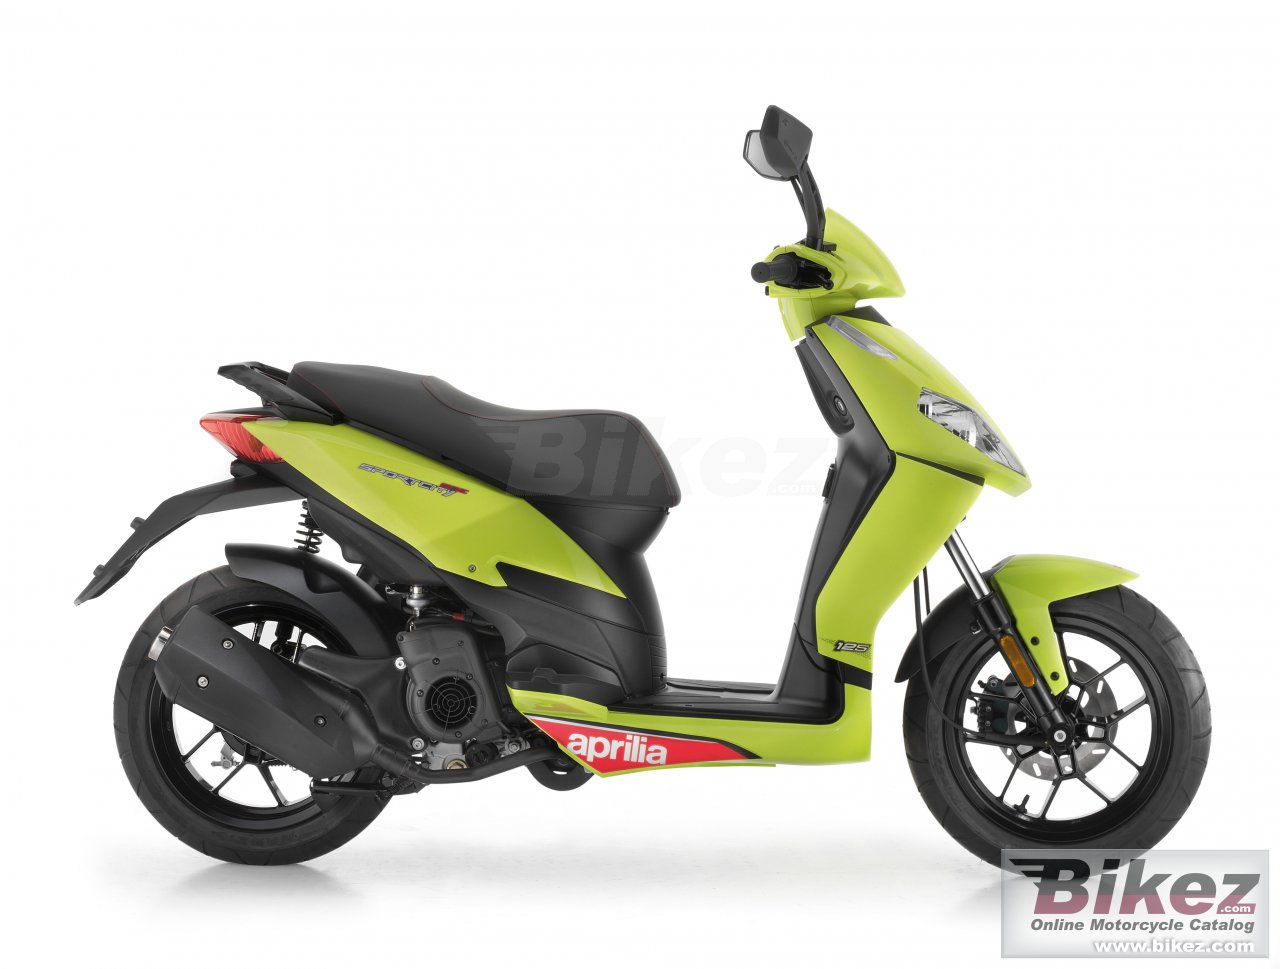 Big Aprilia sportcity one 125 4t picture and wallpaper from Bikez.com